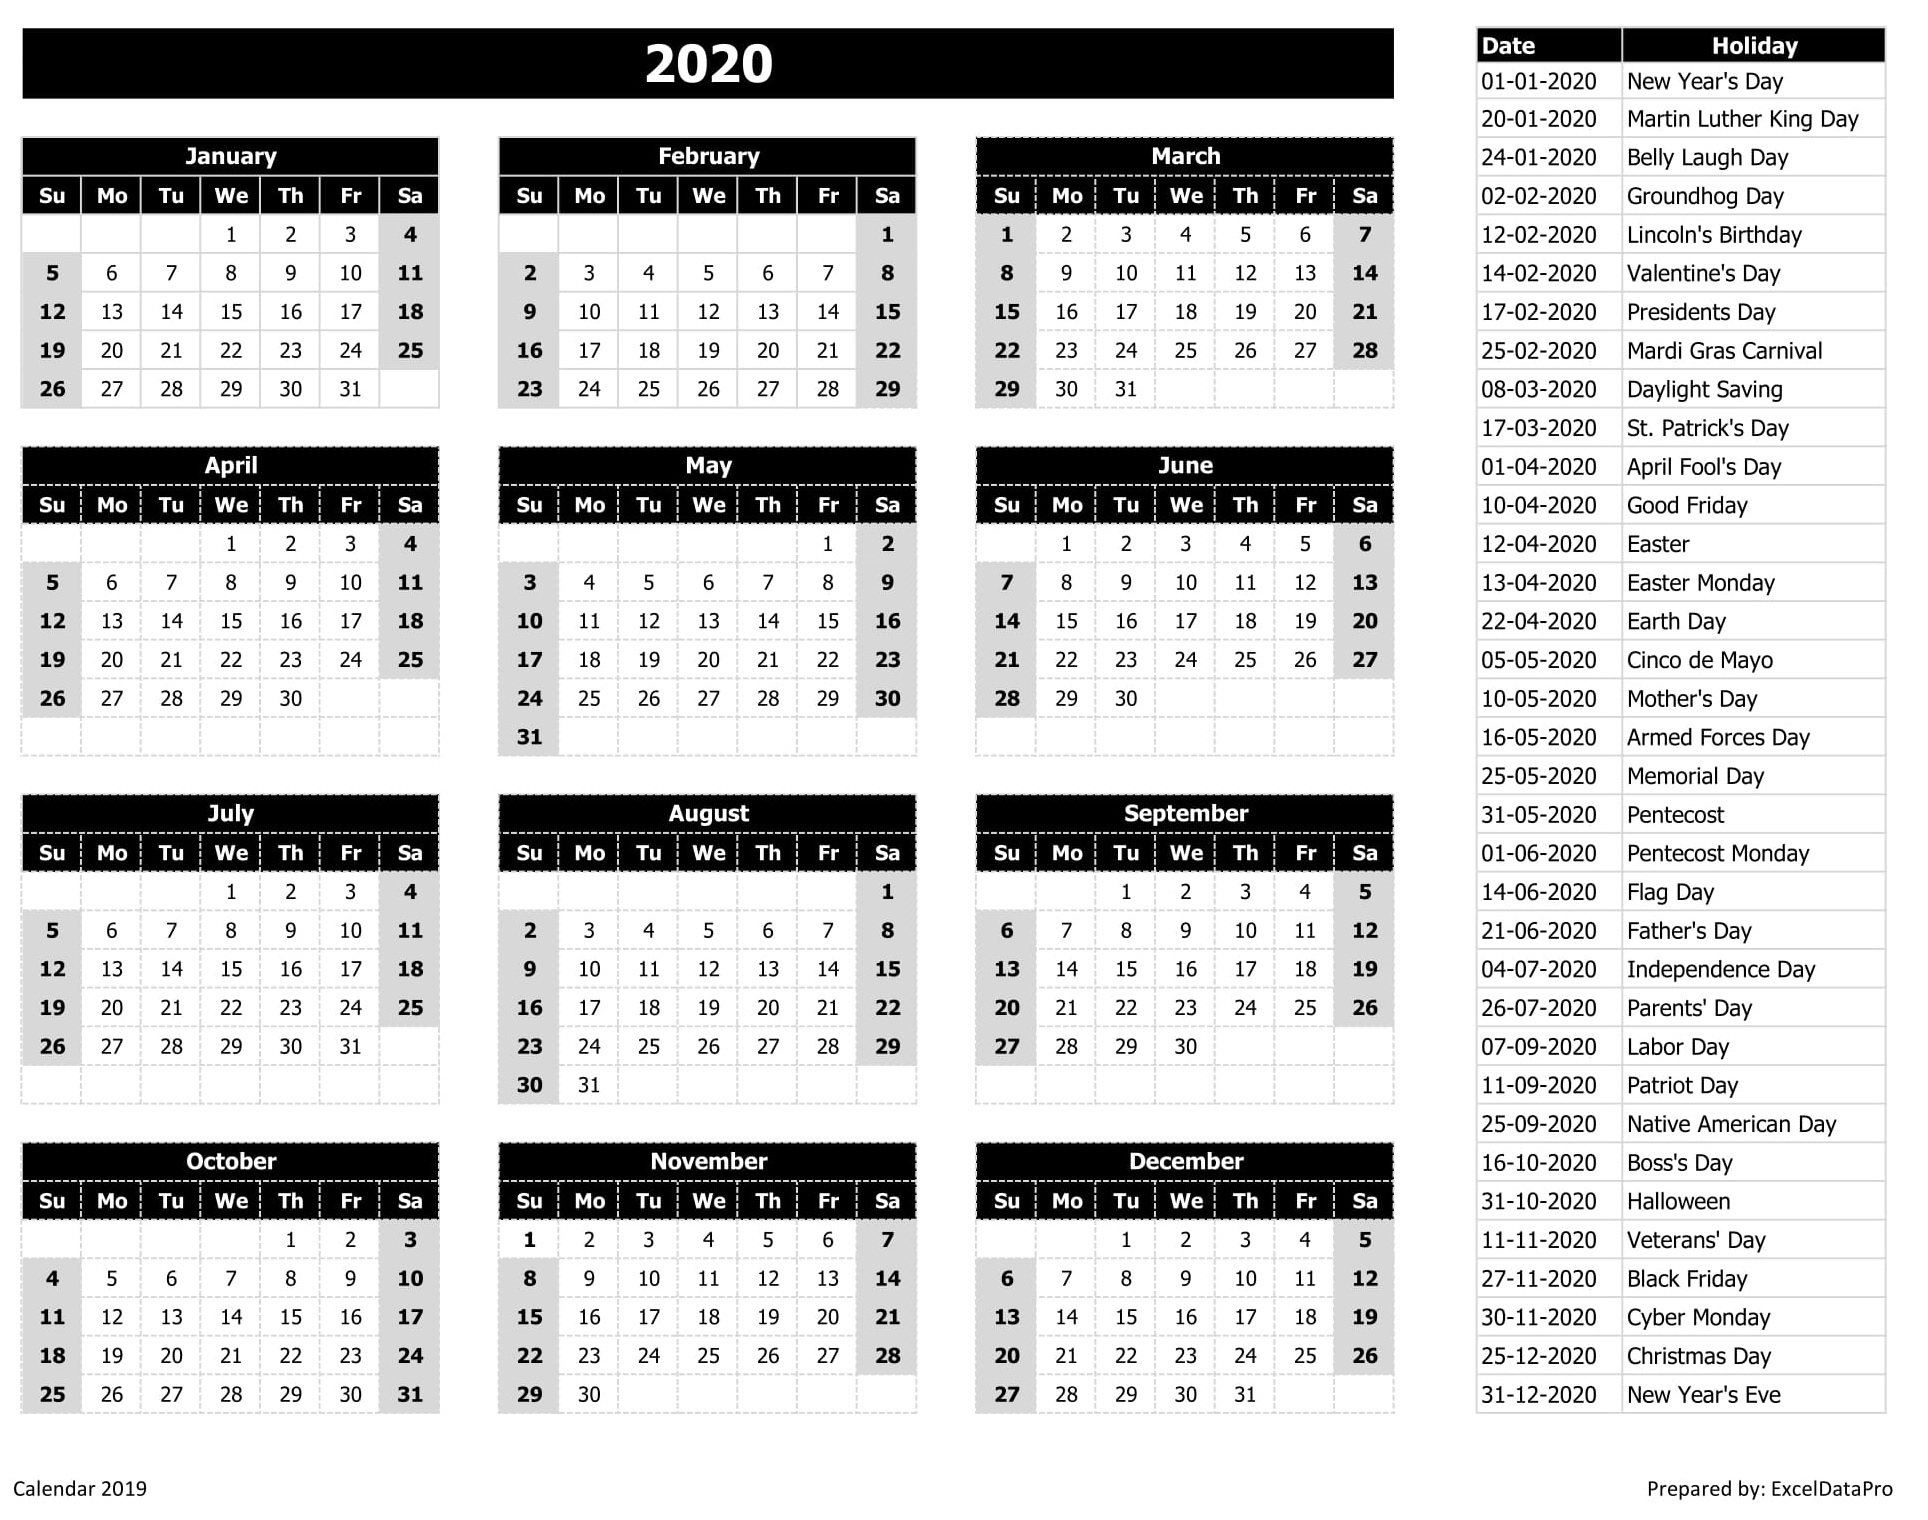 2020 Calendar Excel Templates, Printable Pdfs & Images - Exceldatapro Exceptional 2020 Calendar Holiday List